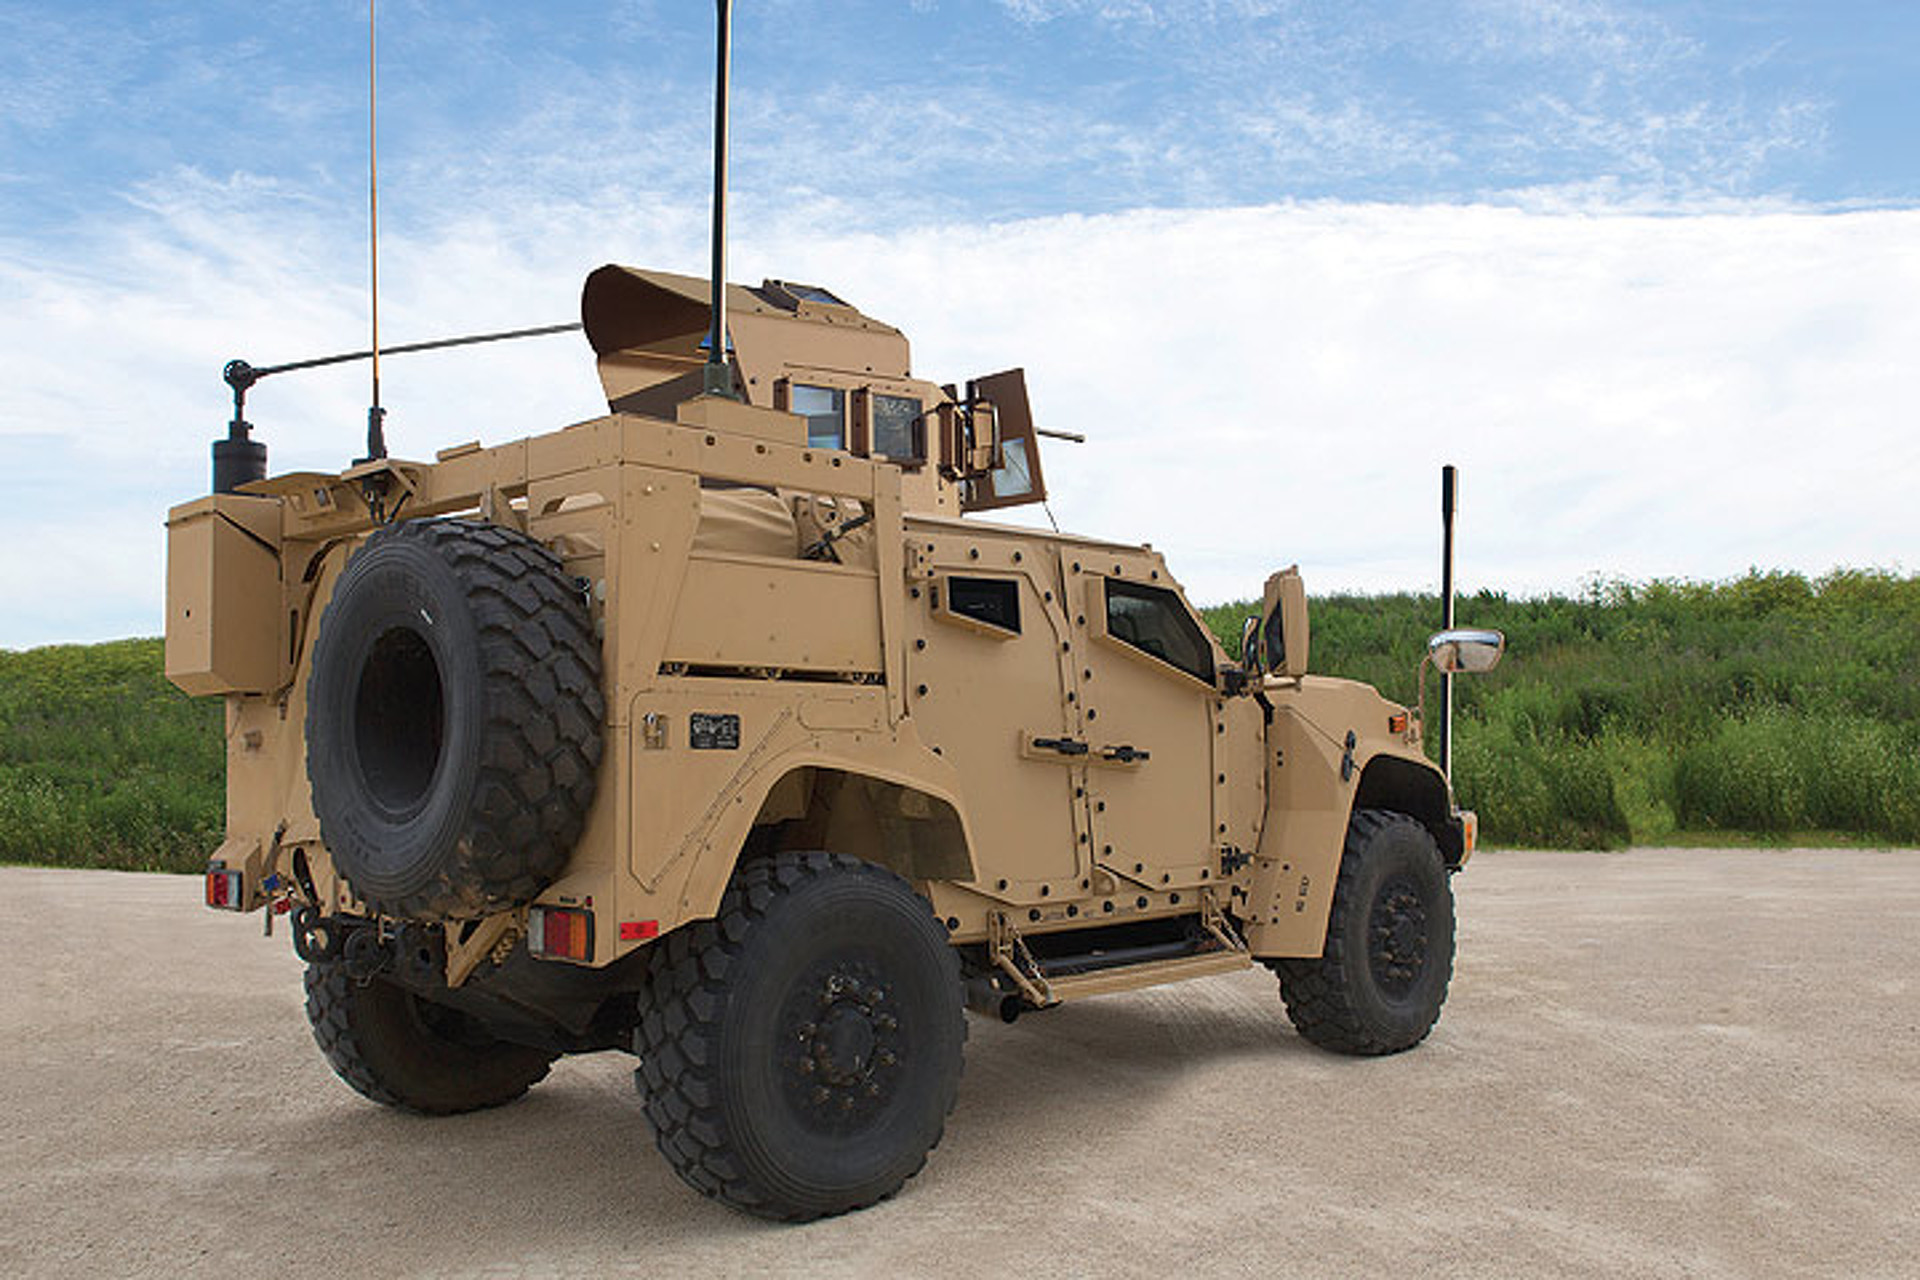 How Does The Oshkosh Jltv Measure Up To The Humvee